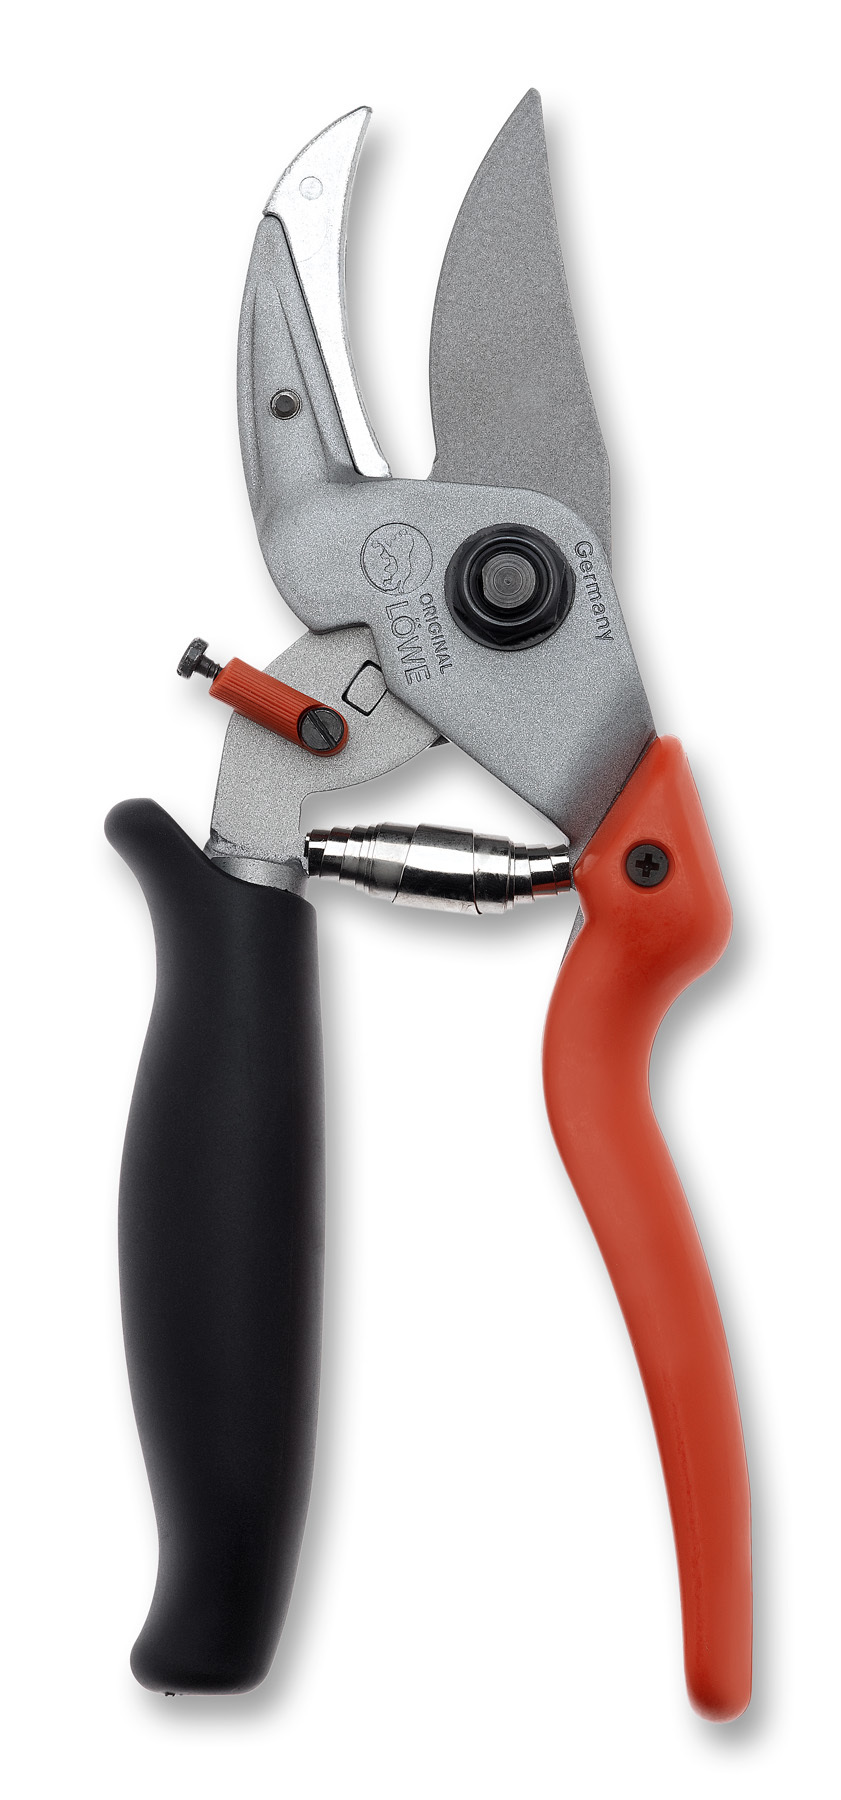 LÖWE 8.109 Anvil pruner with curved blade and rotating handle LO-8.109